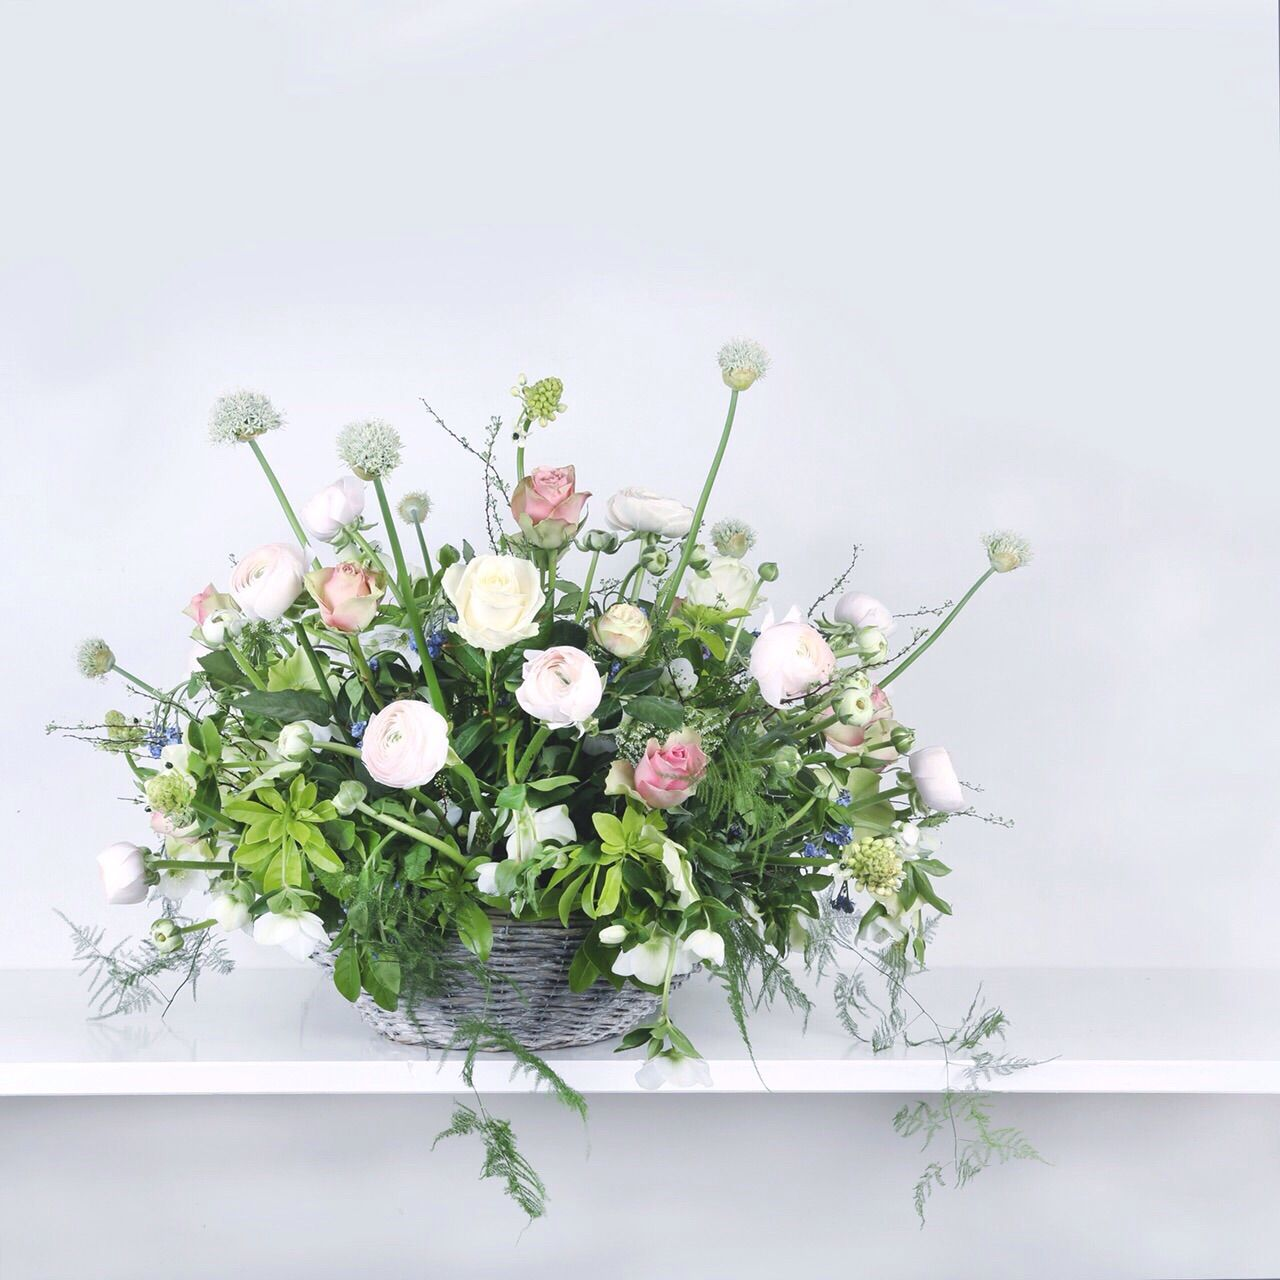 funeral arrangement in basket with pastel colors